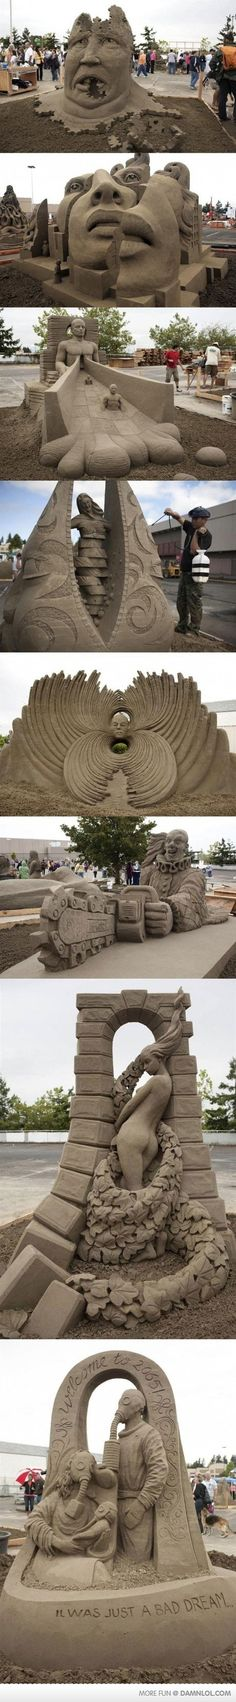 my sand castles never looked like this... I cant even flip the bucket upside-down with out screwing up!